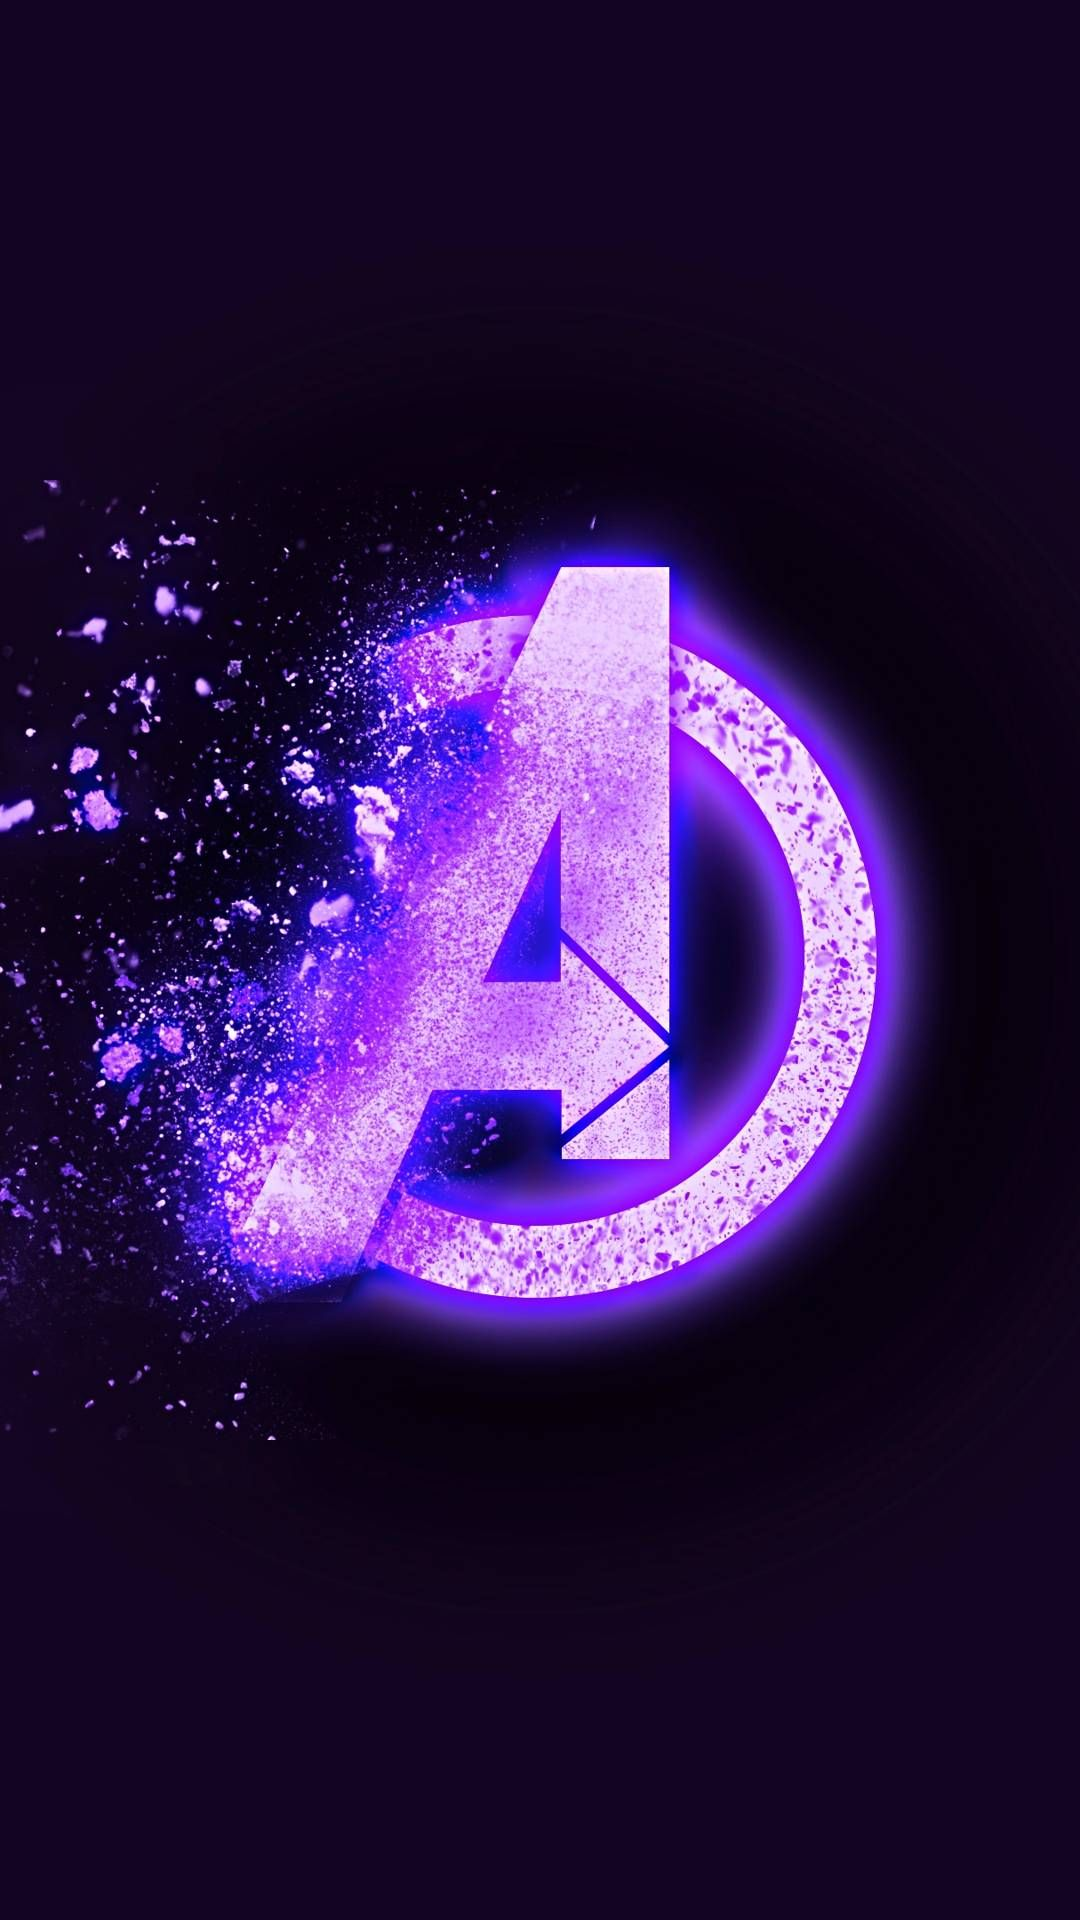 Avengers Endgame Dust Logo iPhone Wallpaper (With images